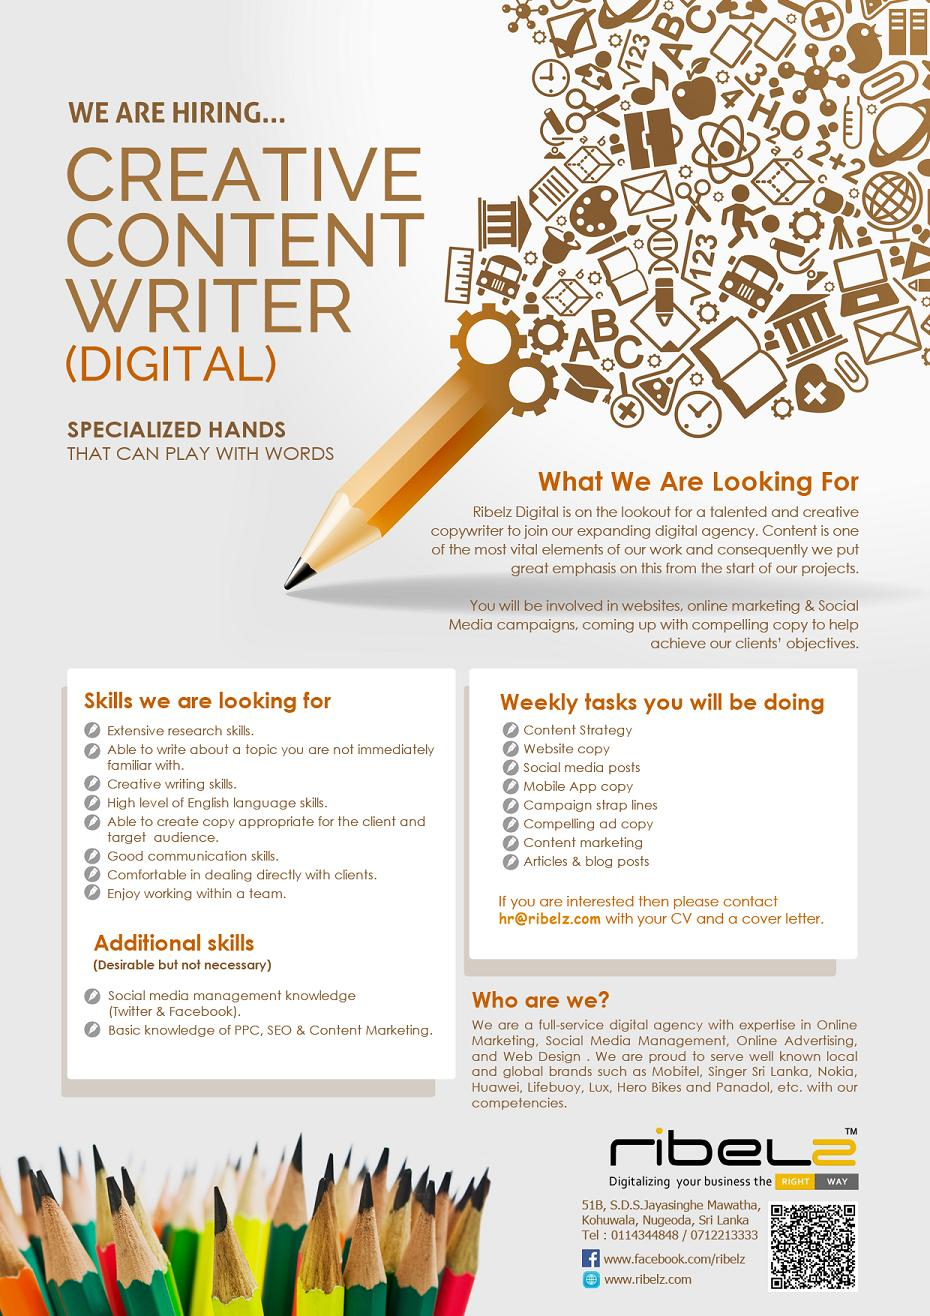 creative content writer job vacancy in sri lanka 201502067ih5895ftyualcn jpg